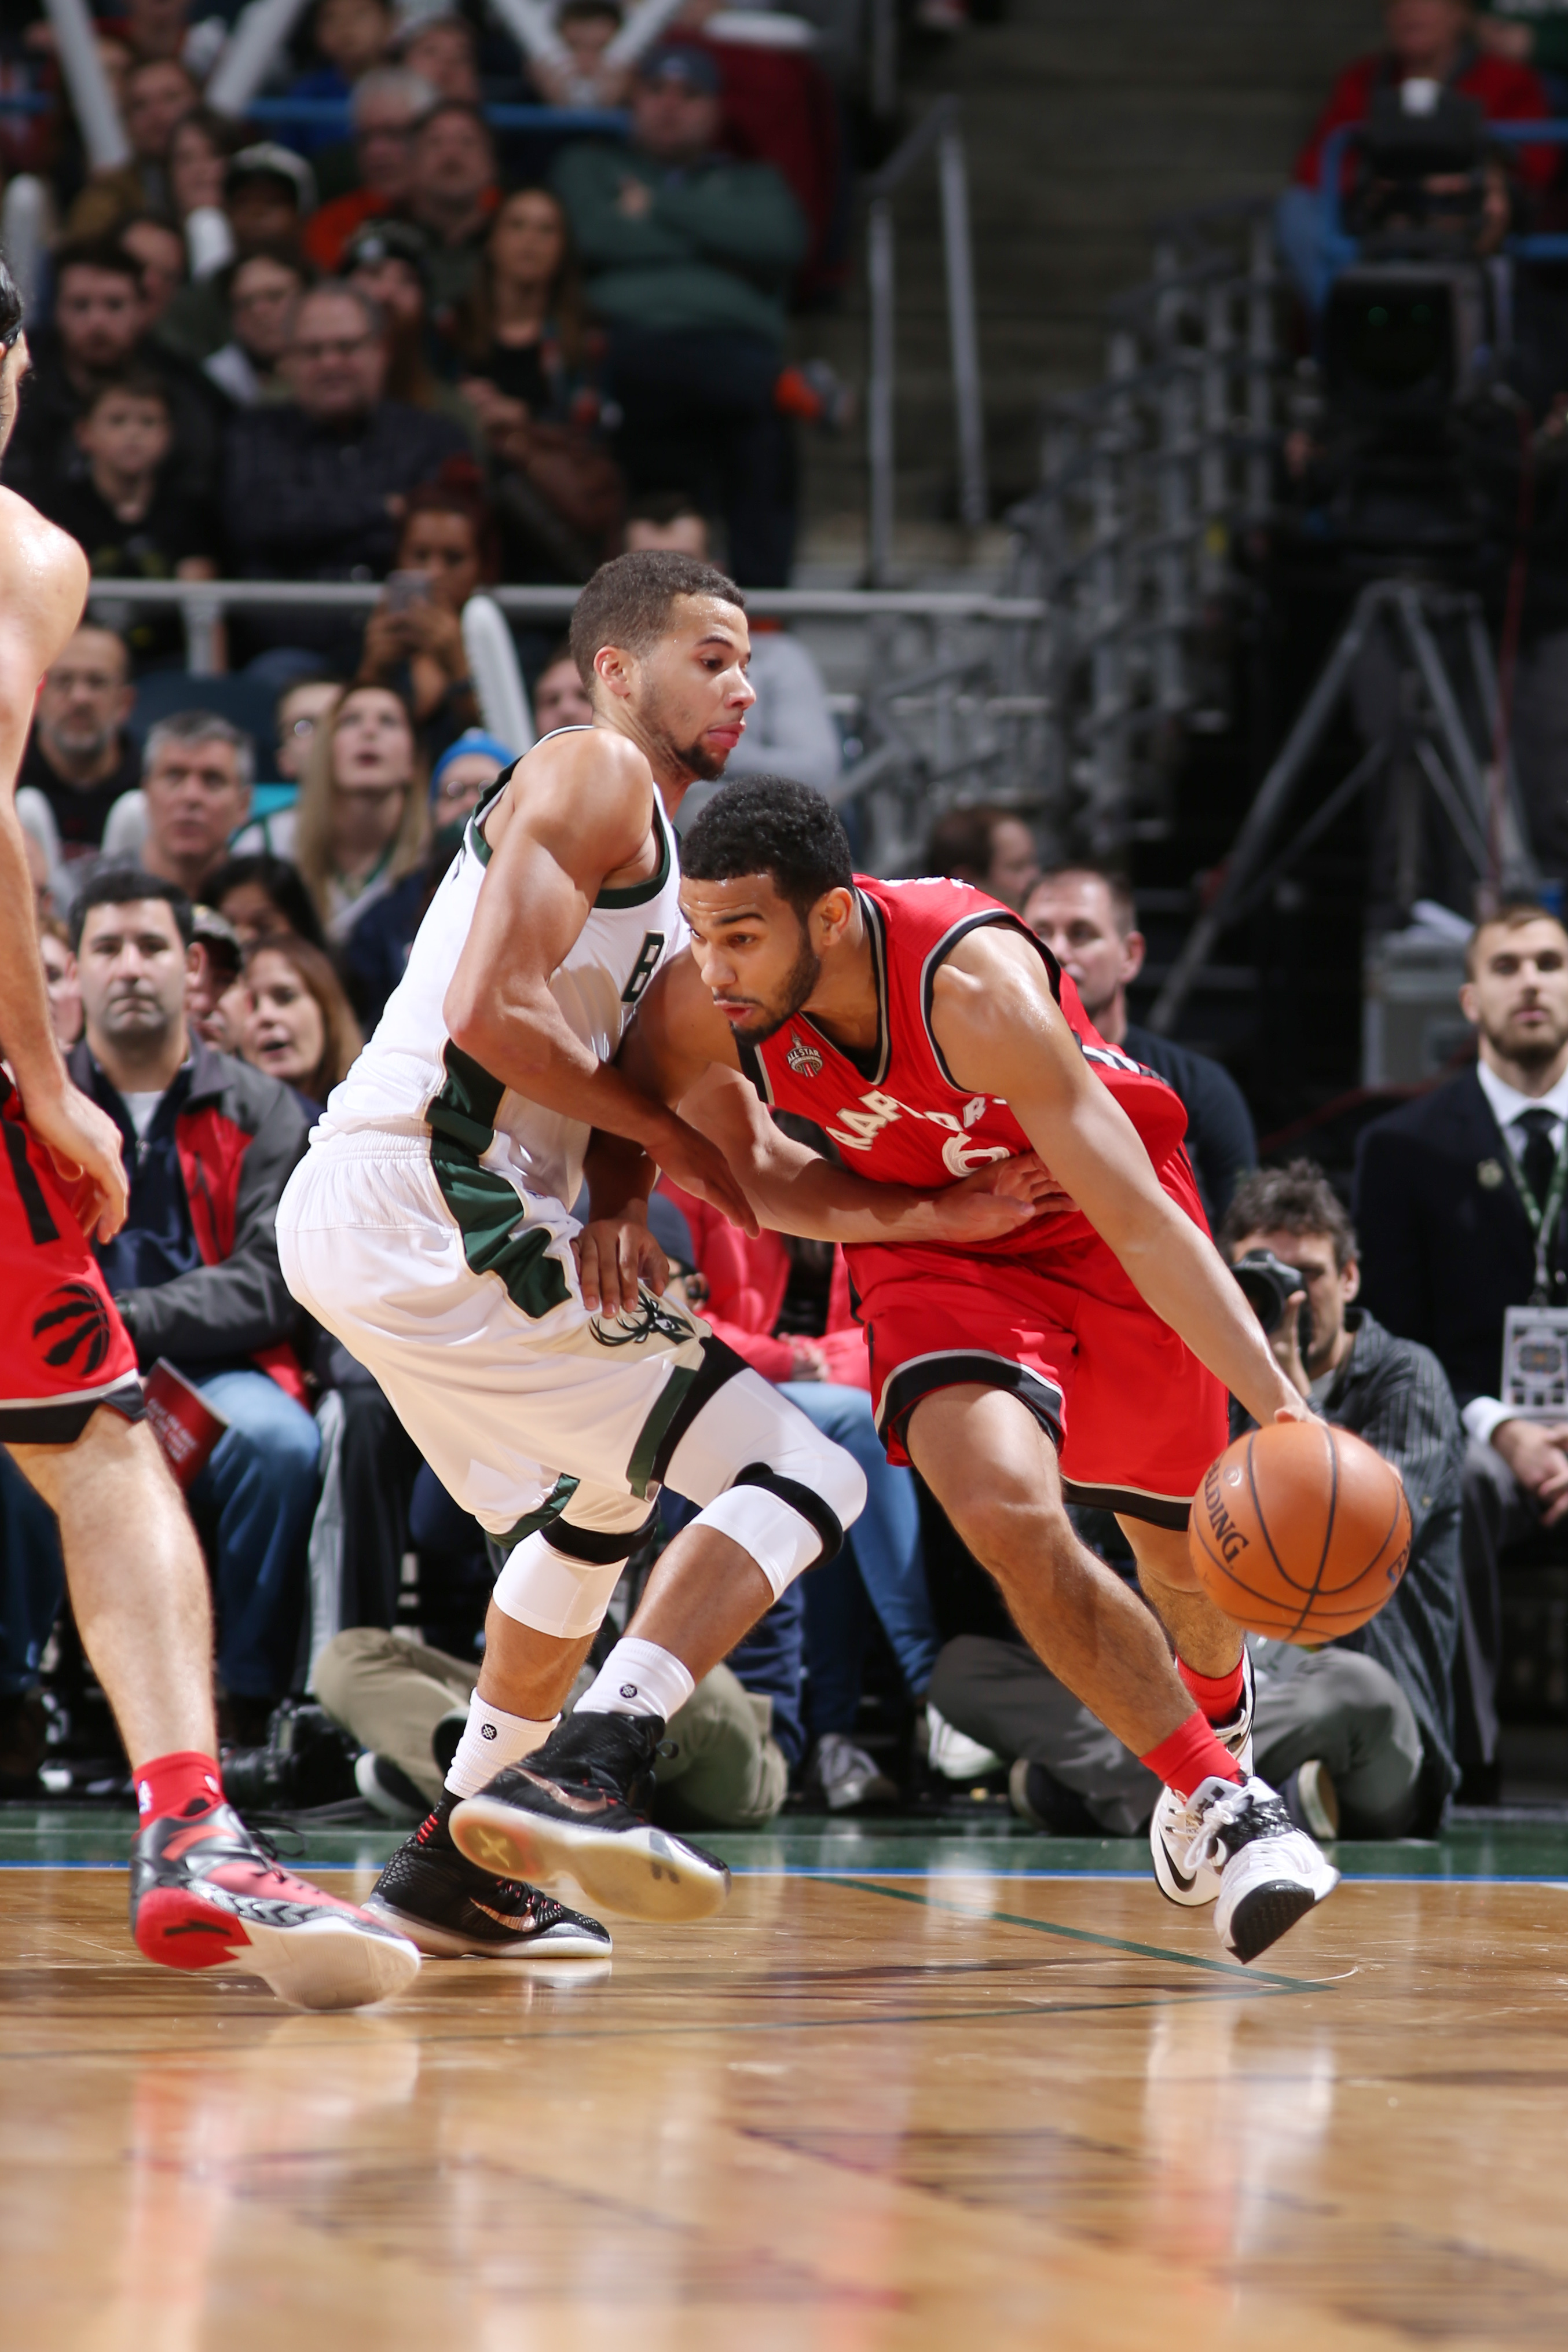 MILWAUKEE, WI - DECEMBER 26: Cory Joseph #6 of the Toronto Raptors drives to the basket against the Milwaukee Bucks during the game on December 26, 2015 at BMO Harris Bradley Center in Milwaukee, Wisconsin. (Photo by Gary Dineen/NBAE via Getty Images)